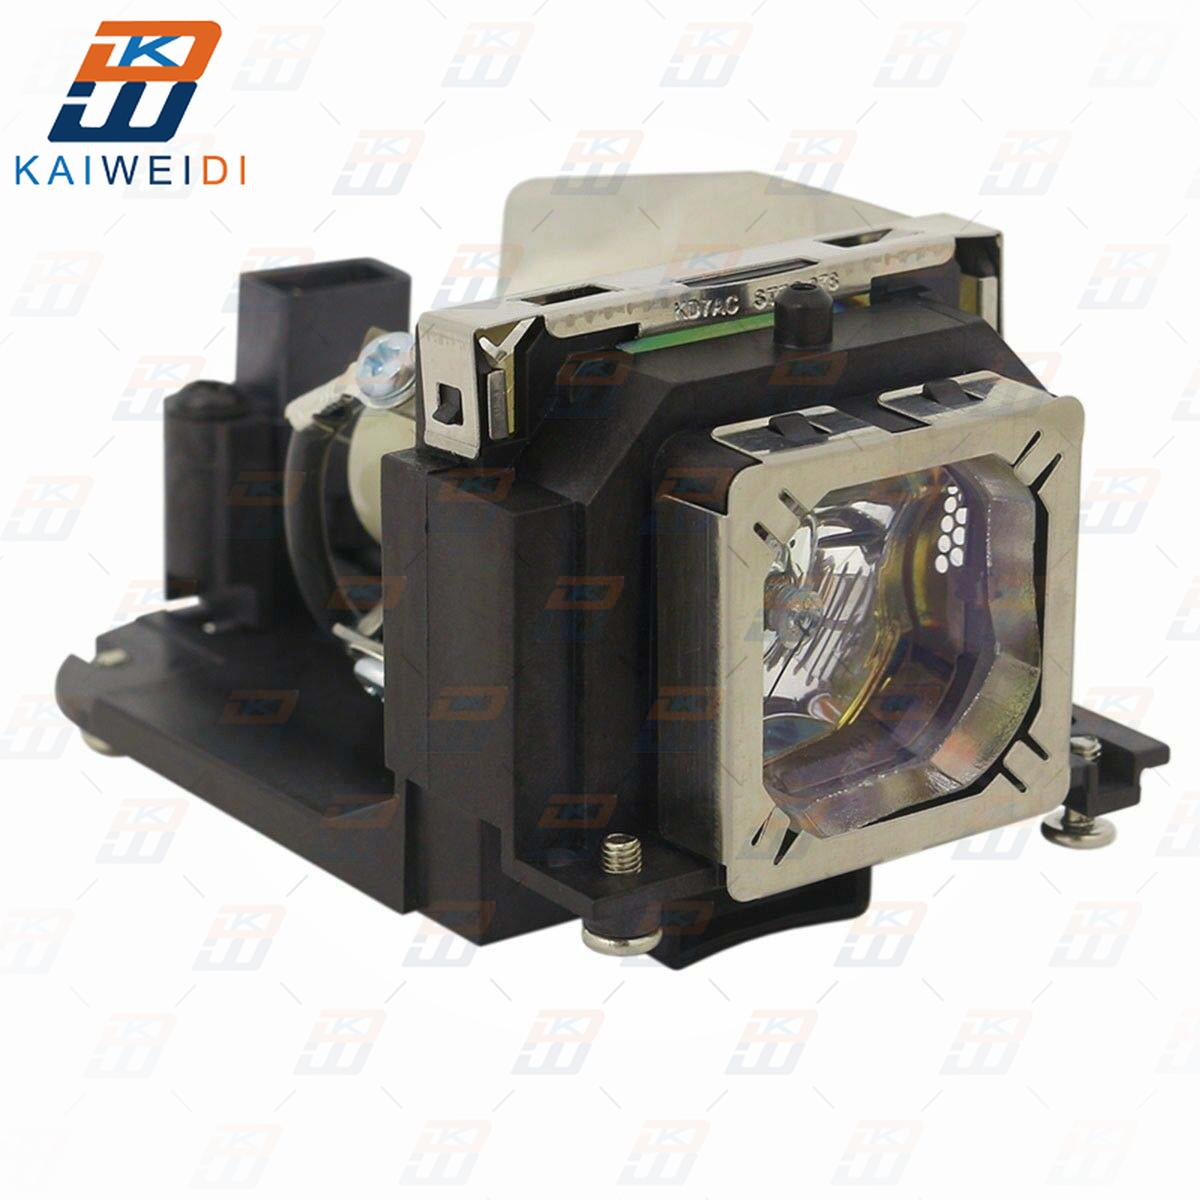 ET-LAL100 Projector Lamp For PANASONIC PT-LW25H / PT-LX22 / PT-LX26 / PT-LX26H / PT-LX30H Projector Bare Lamp Bulb /with Housing